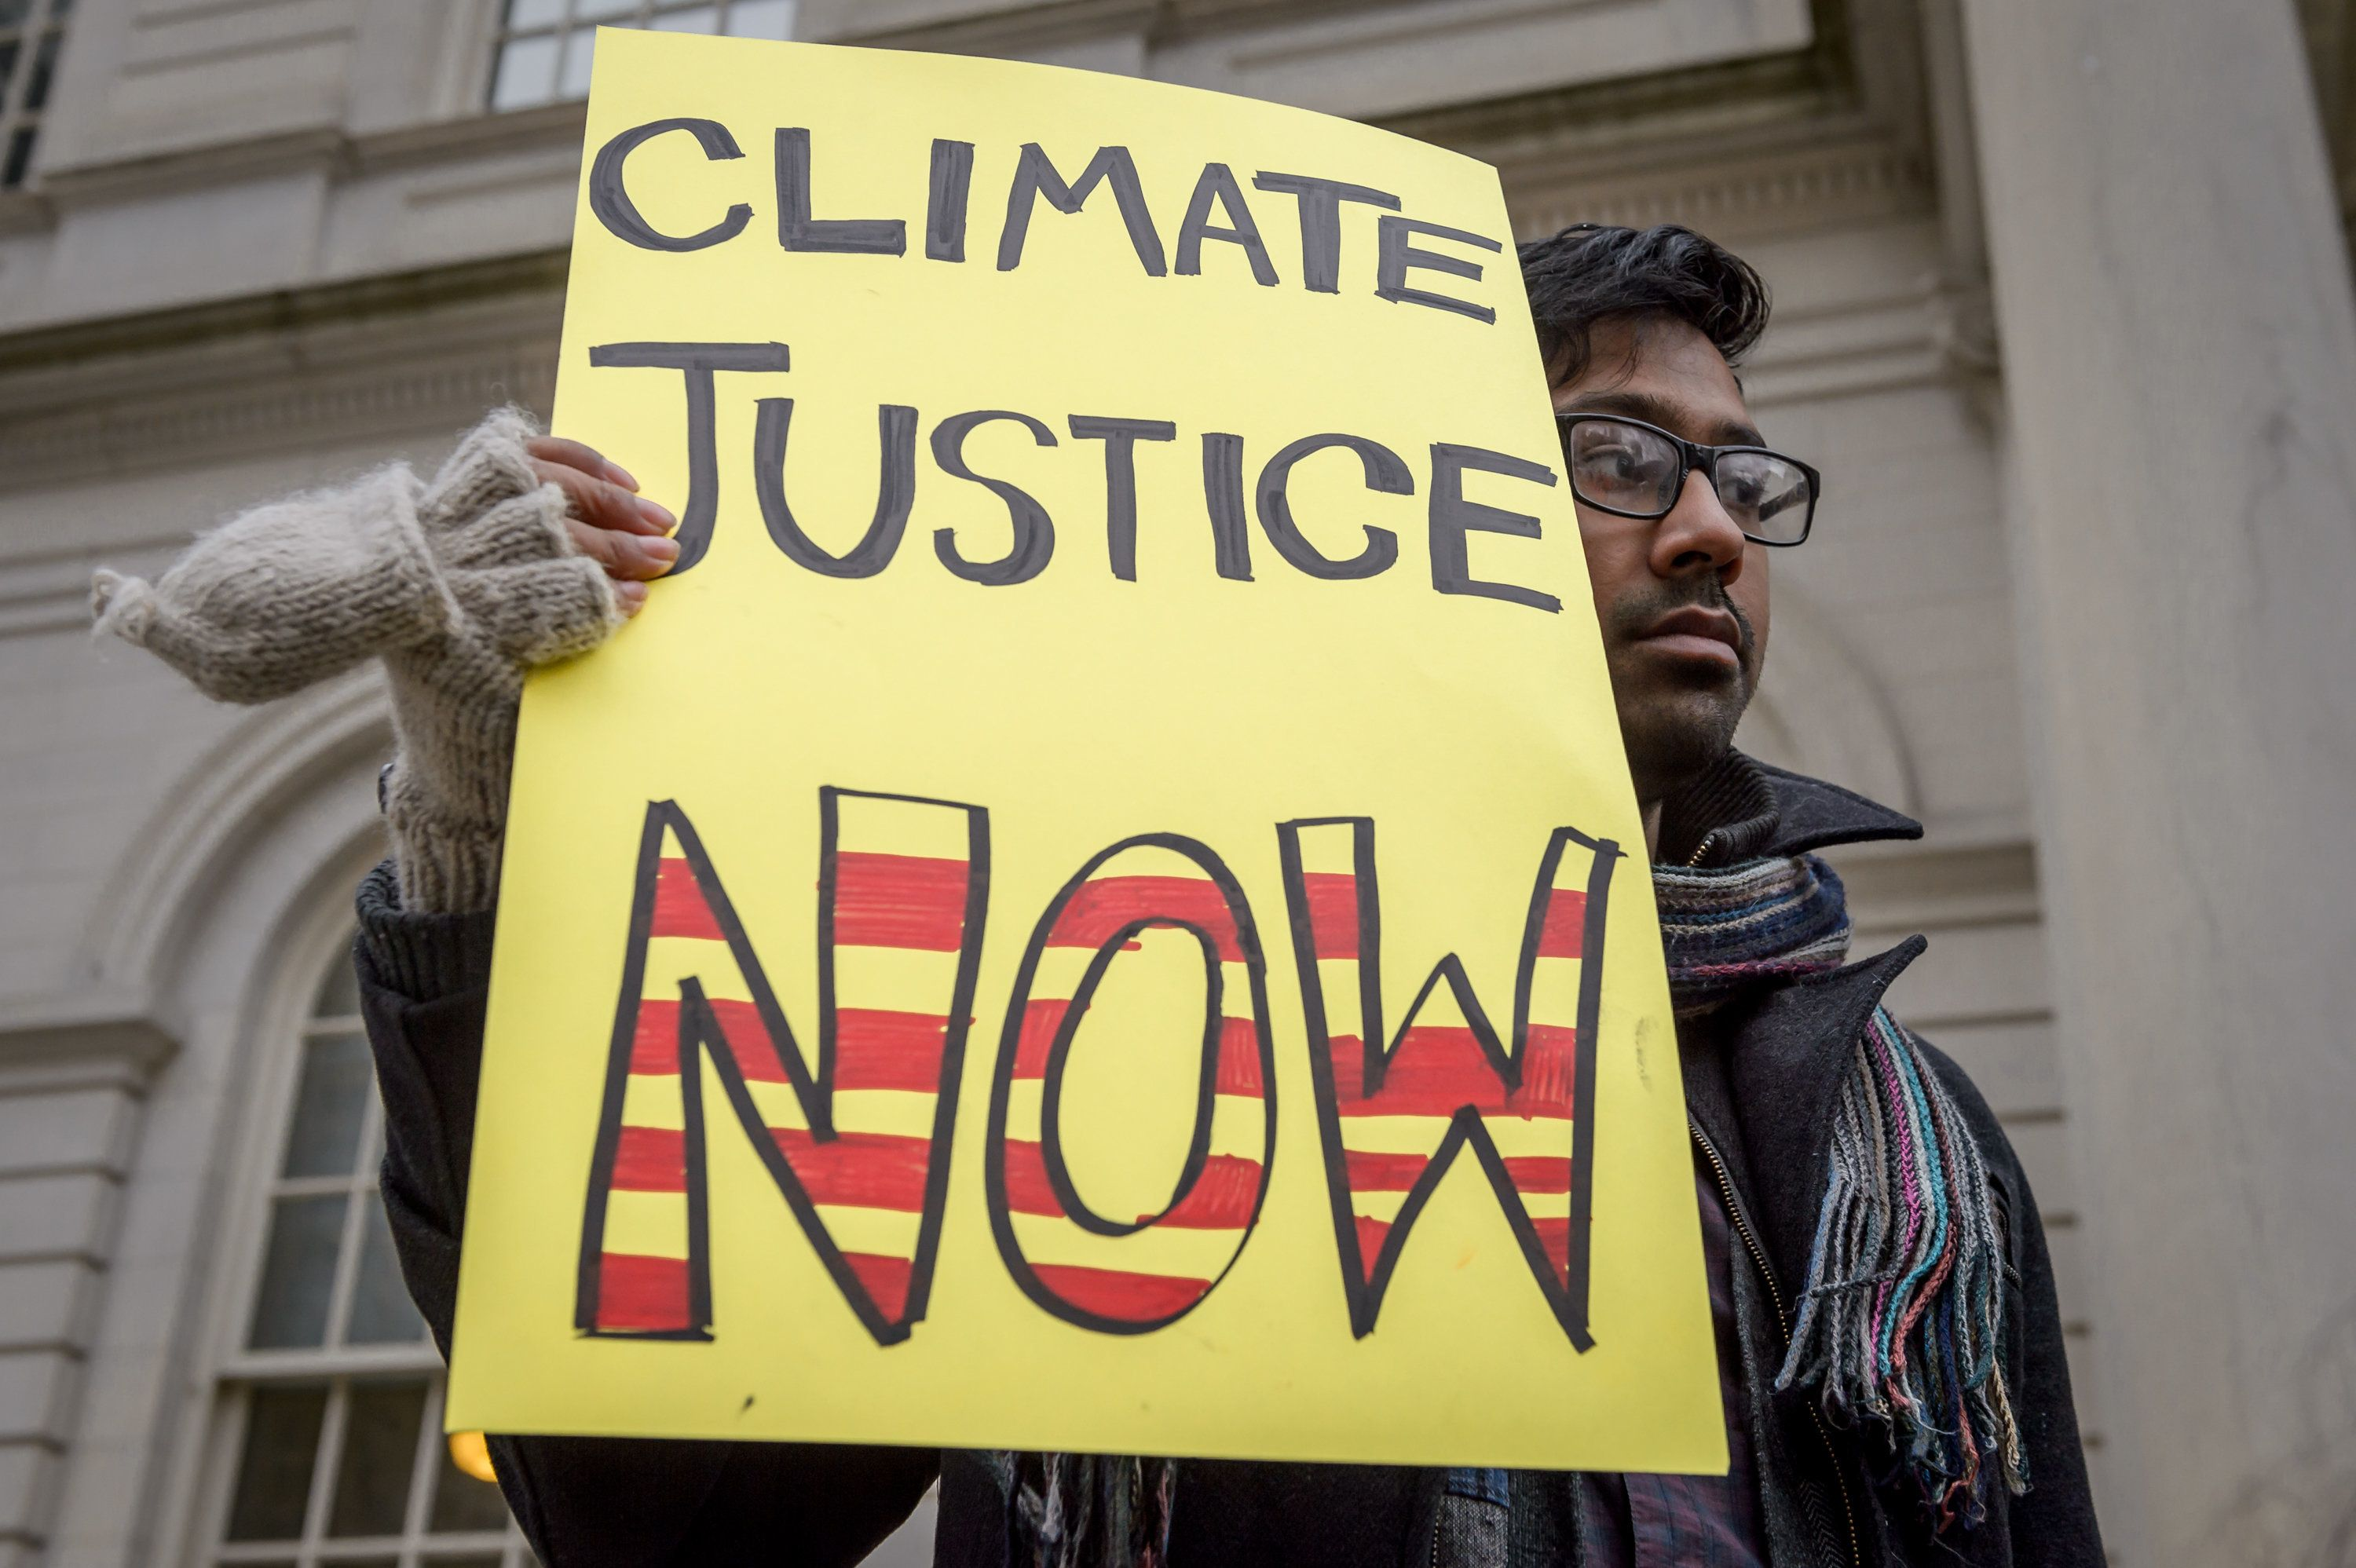 CITY HALL STEPS, NEW YORK, UNITED STATES - 2018/11/28: As global leaders assemble for the 4th Annual Climate Finance Day, New Yorkers, including representatives from environmental, community and student groups, held a rally at City Hall and call on NYC to divest public money from banks that fuel climate change and to establish a municipal public bank to help fund the transition to a just, sustainable economy. (Photo by Erik McGregor/Pacific Press/LightRocket via Getty Images)